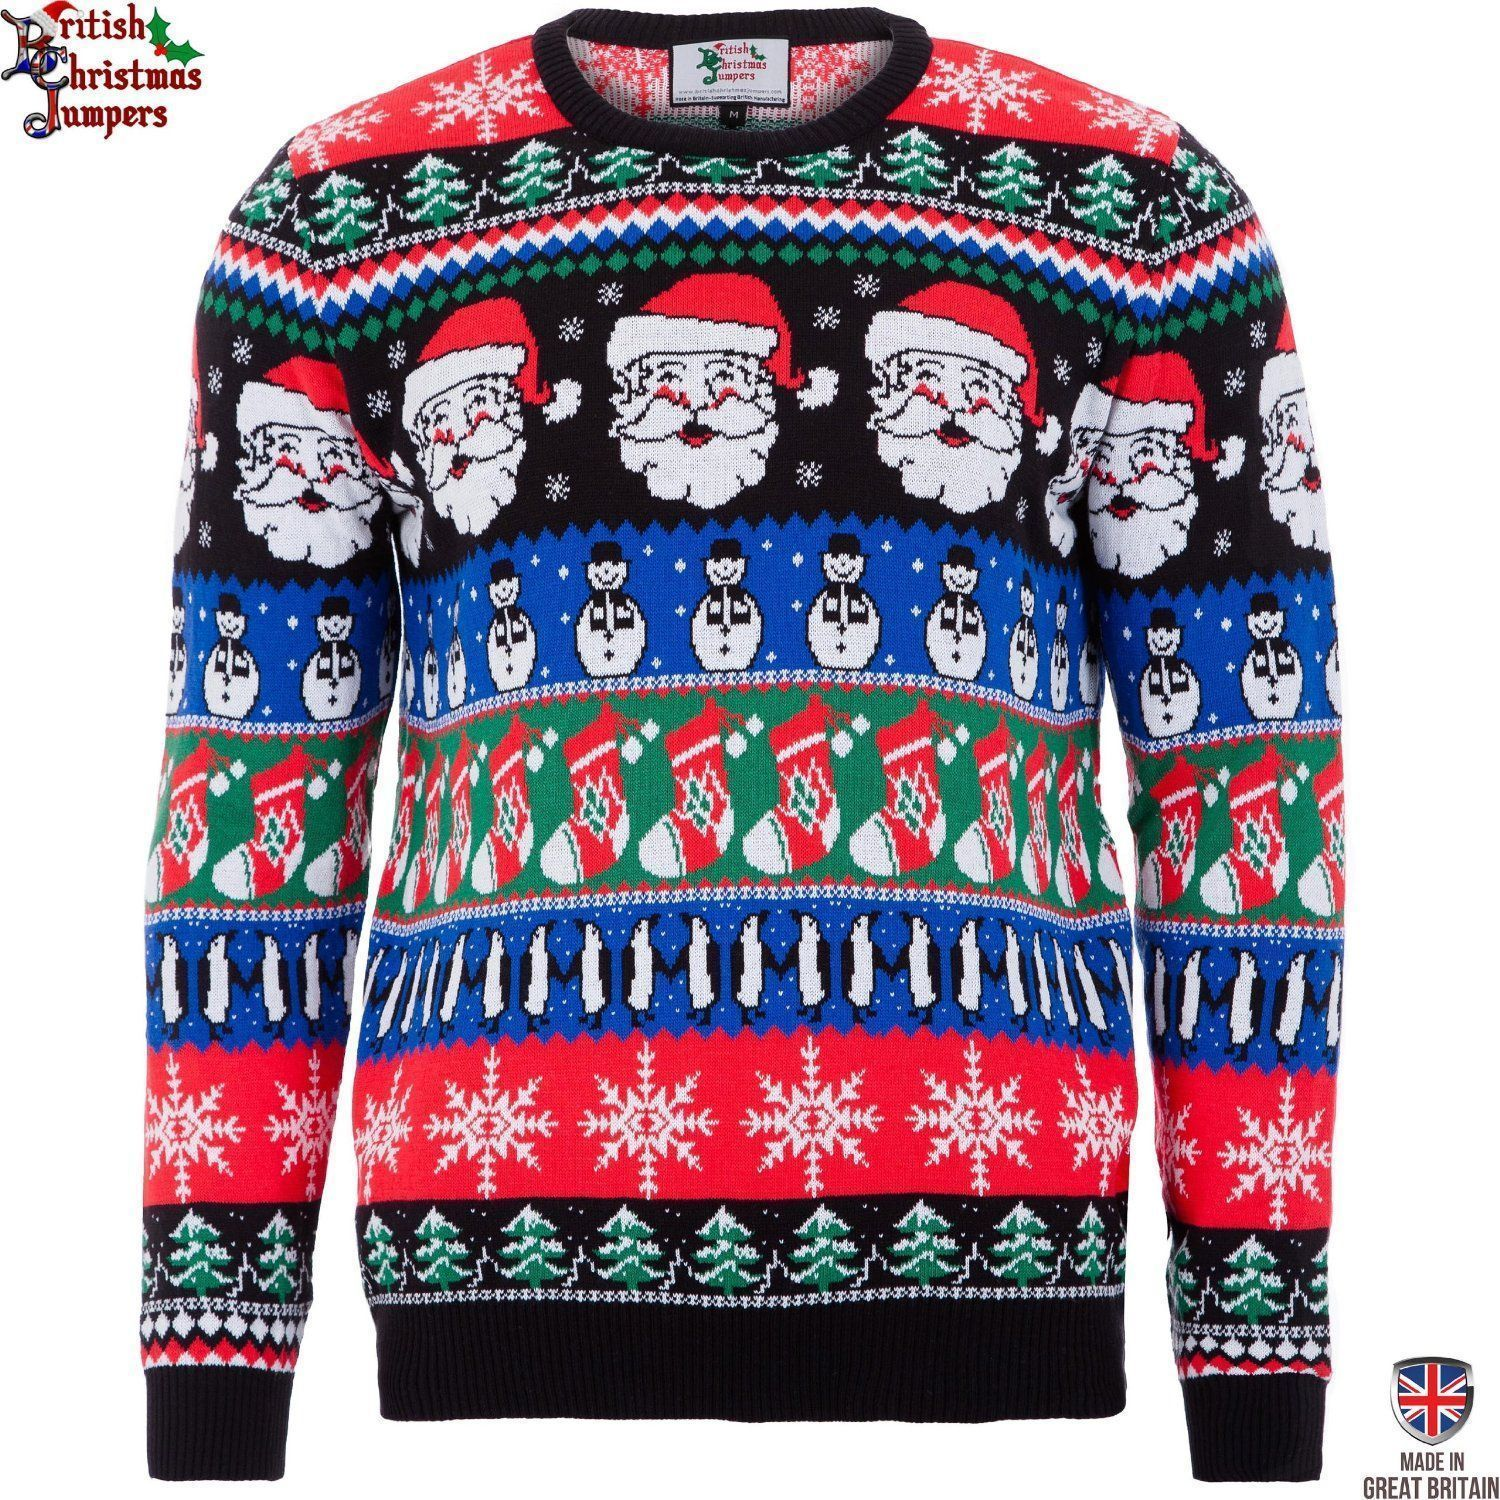 Welcome To British Christmas Jumpers The Home Of Handmade Christmas Creations Christmas Jumpers Christmas Sweaters Christmas Sweater Men